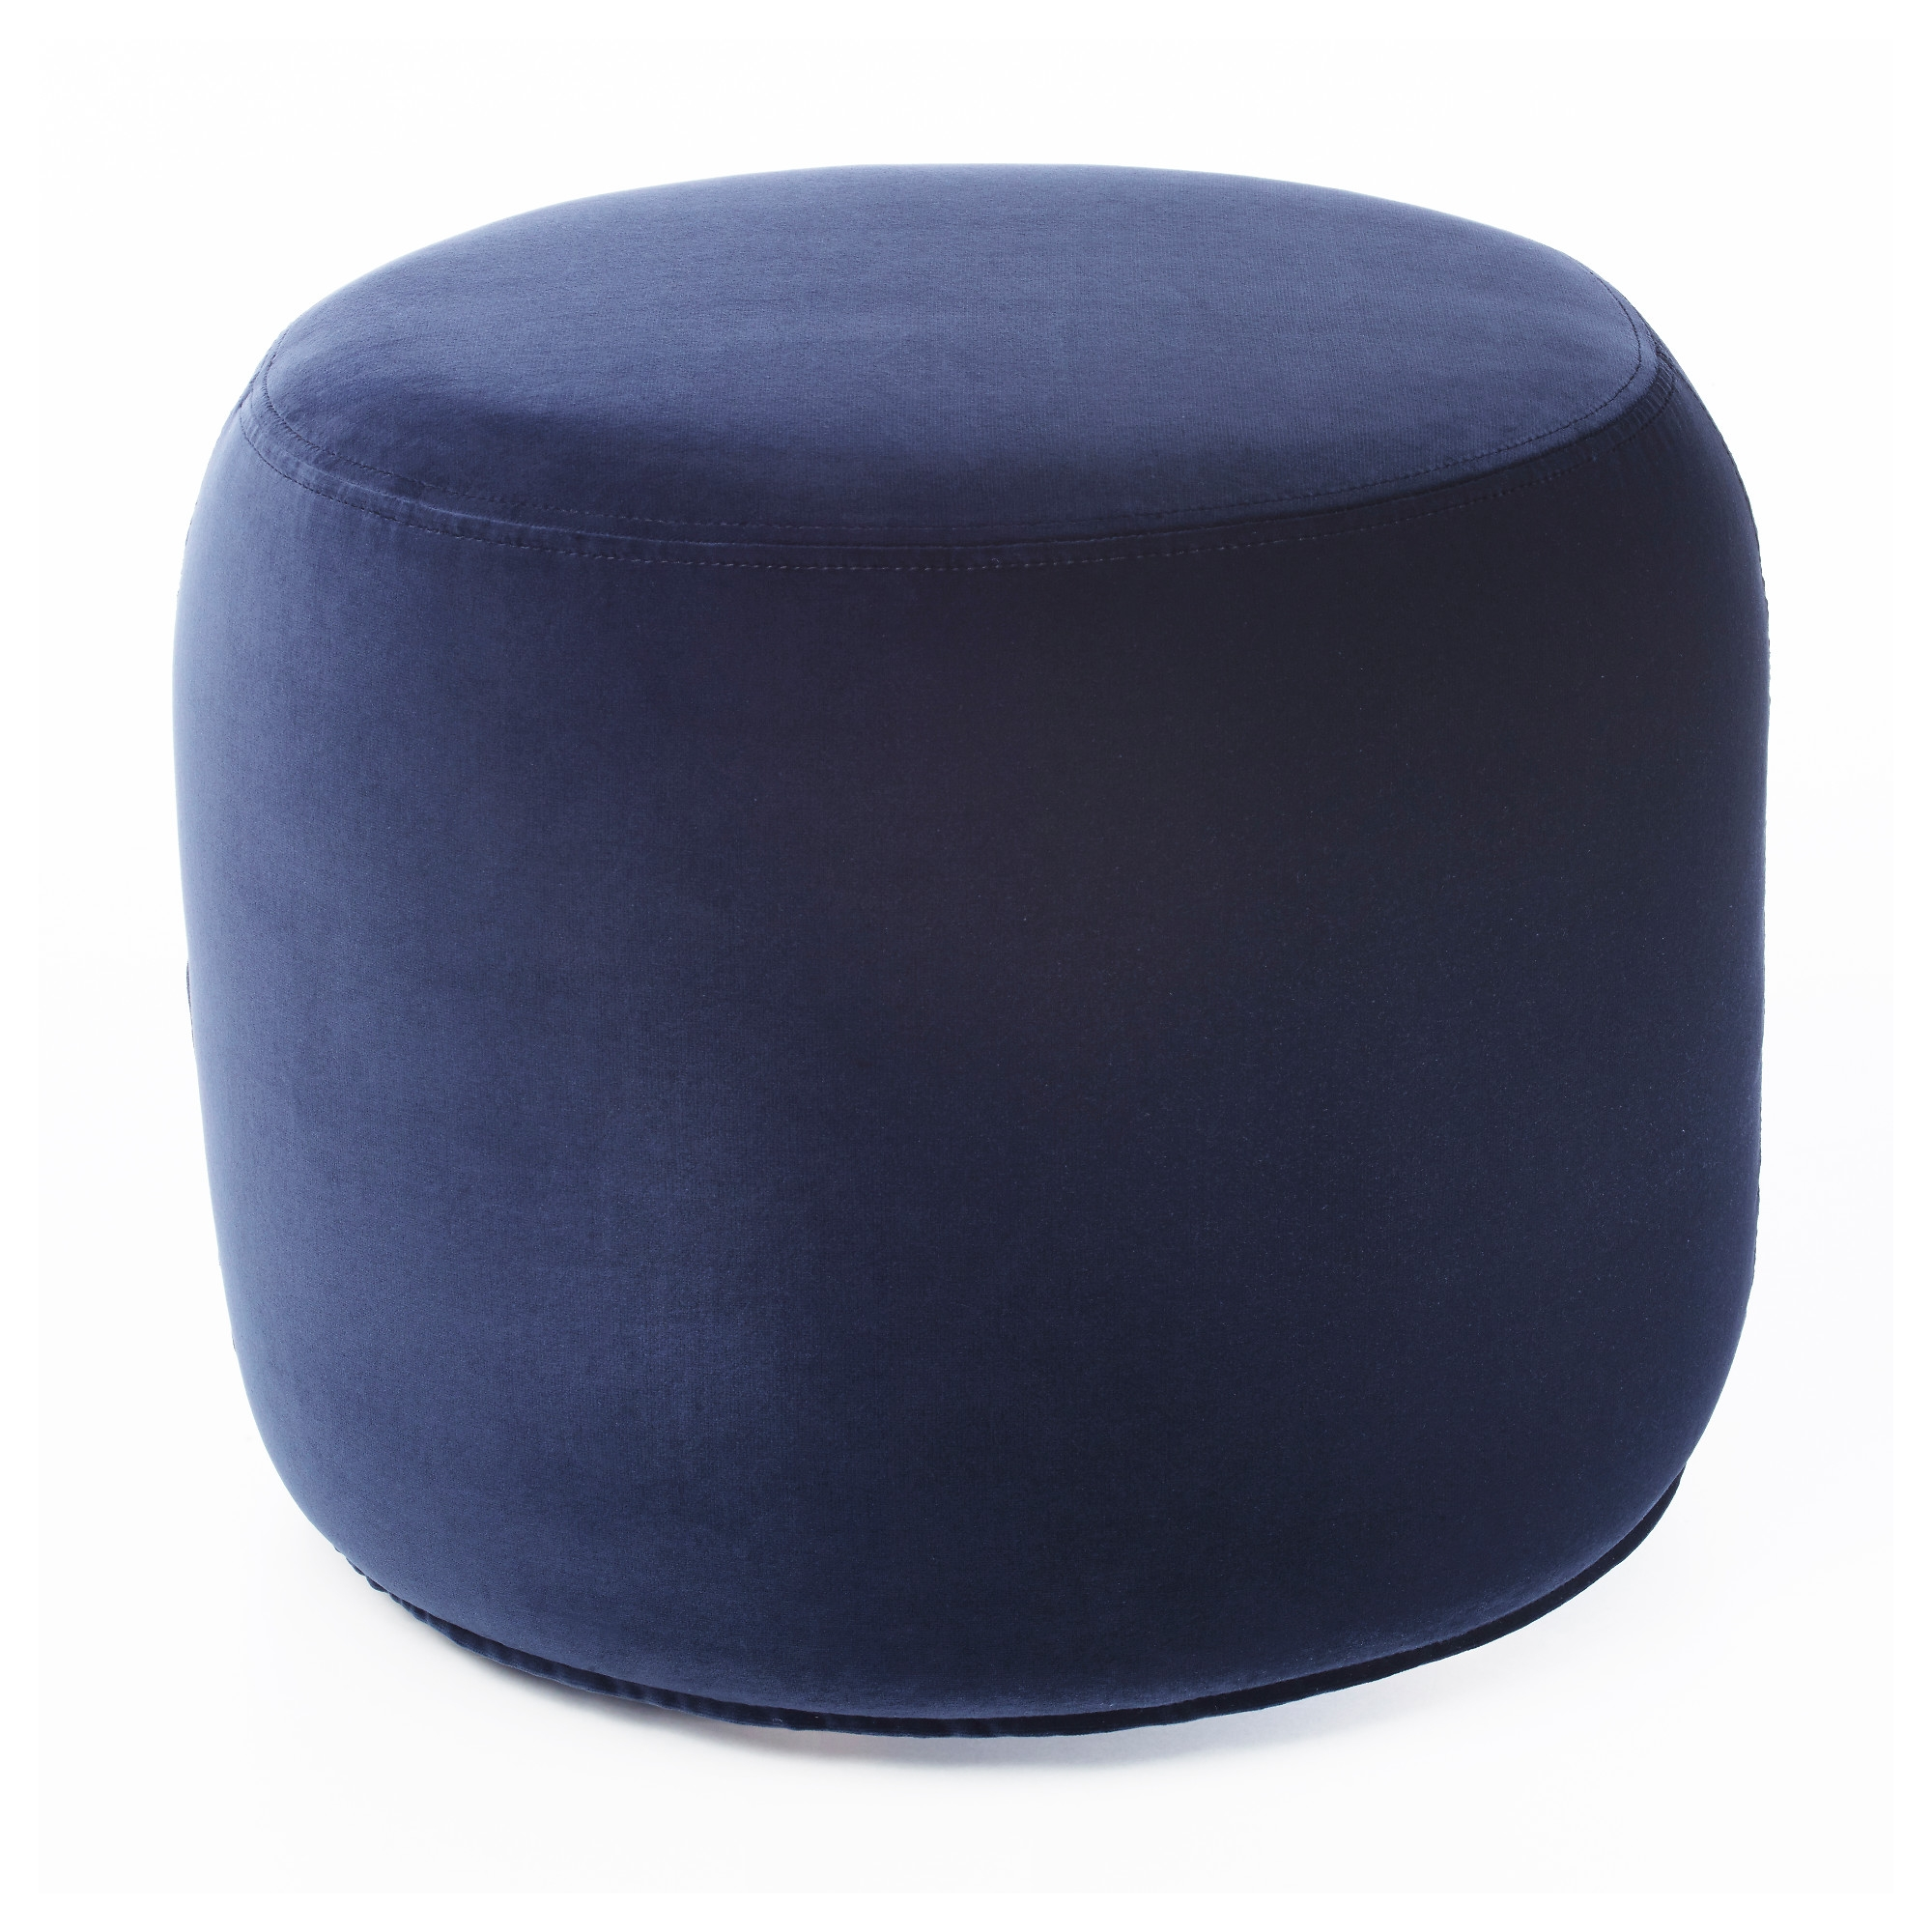 Footstools Ottomans Pouffes Ikea For Footstools And Pouffes (Image 6 of 15)